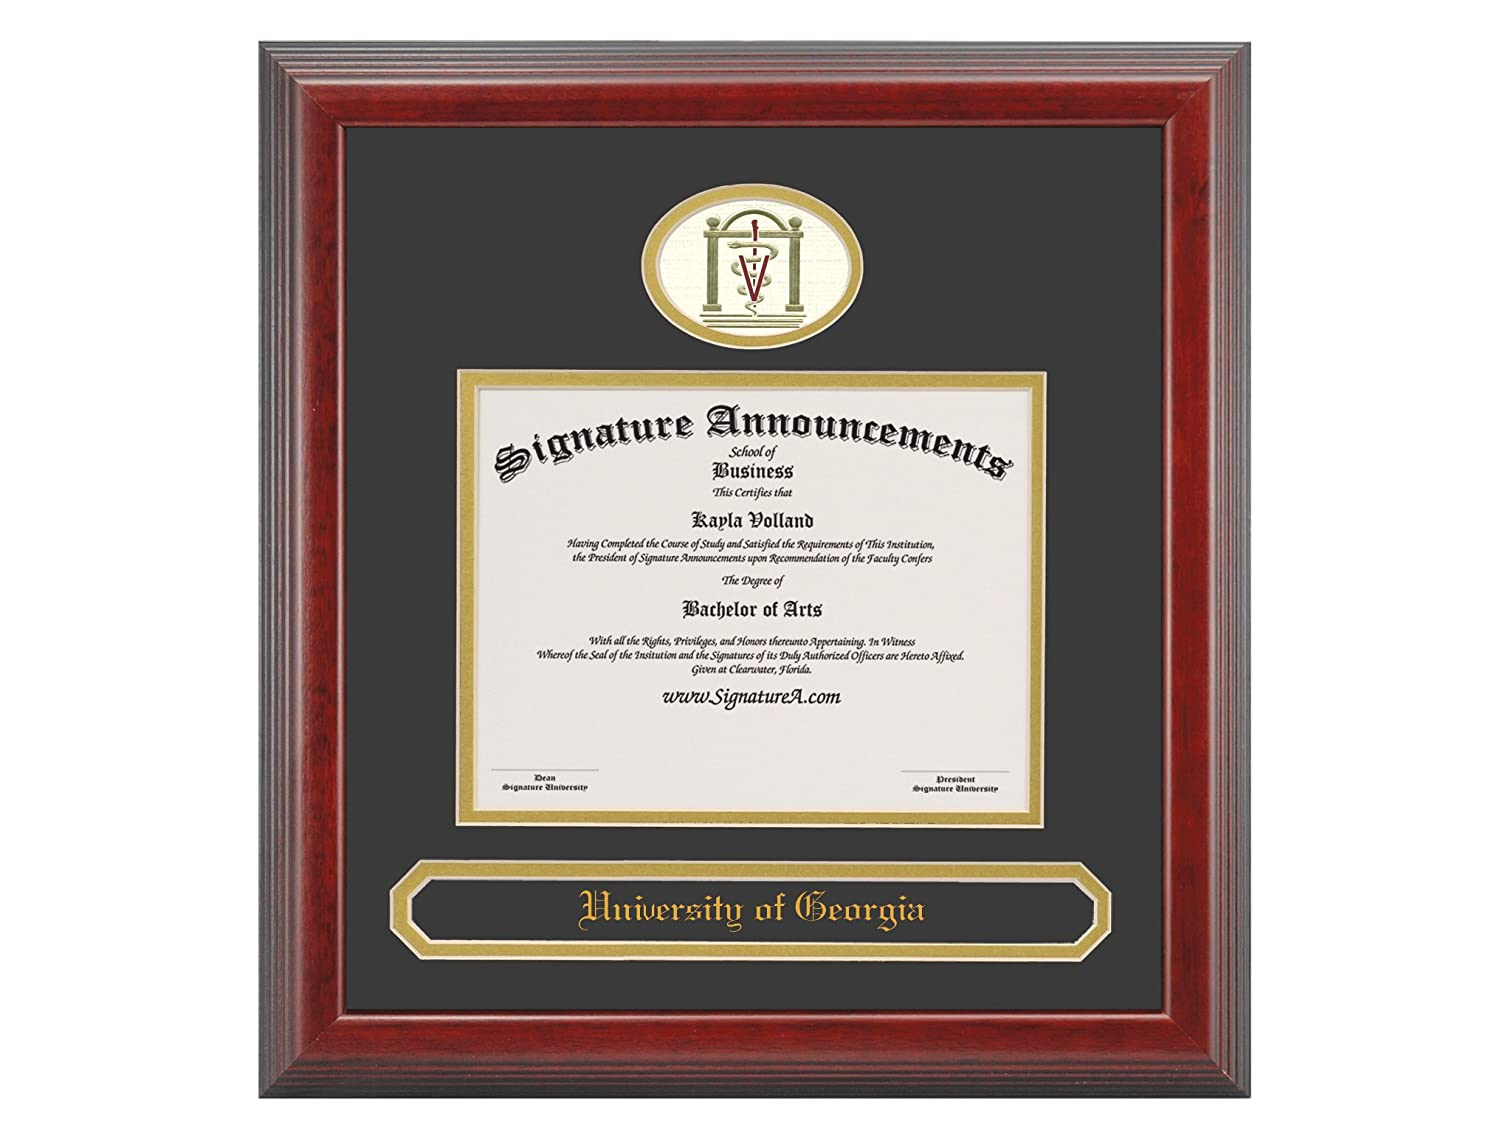 20 x 20 Signature Announcements University-of-Georgia-College-of-Veterinary Sculpted Foil Seal /& Name Graduation Diploma Frame Cherry